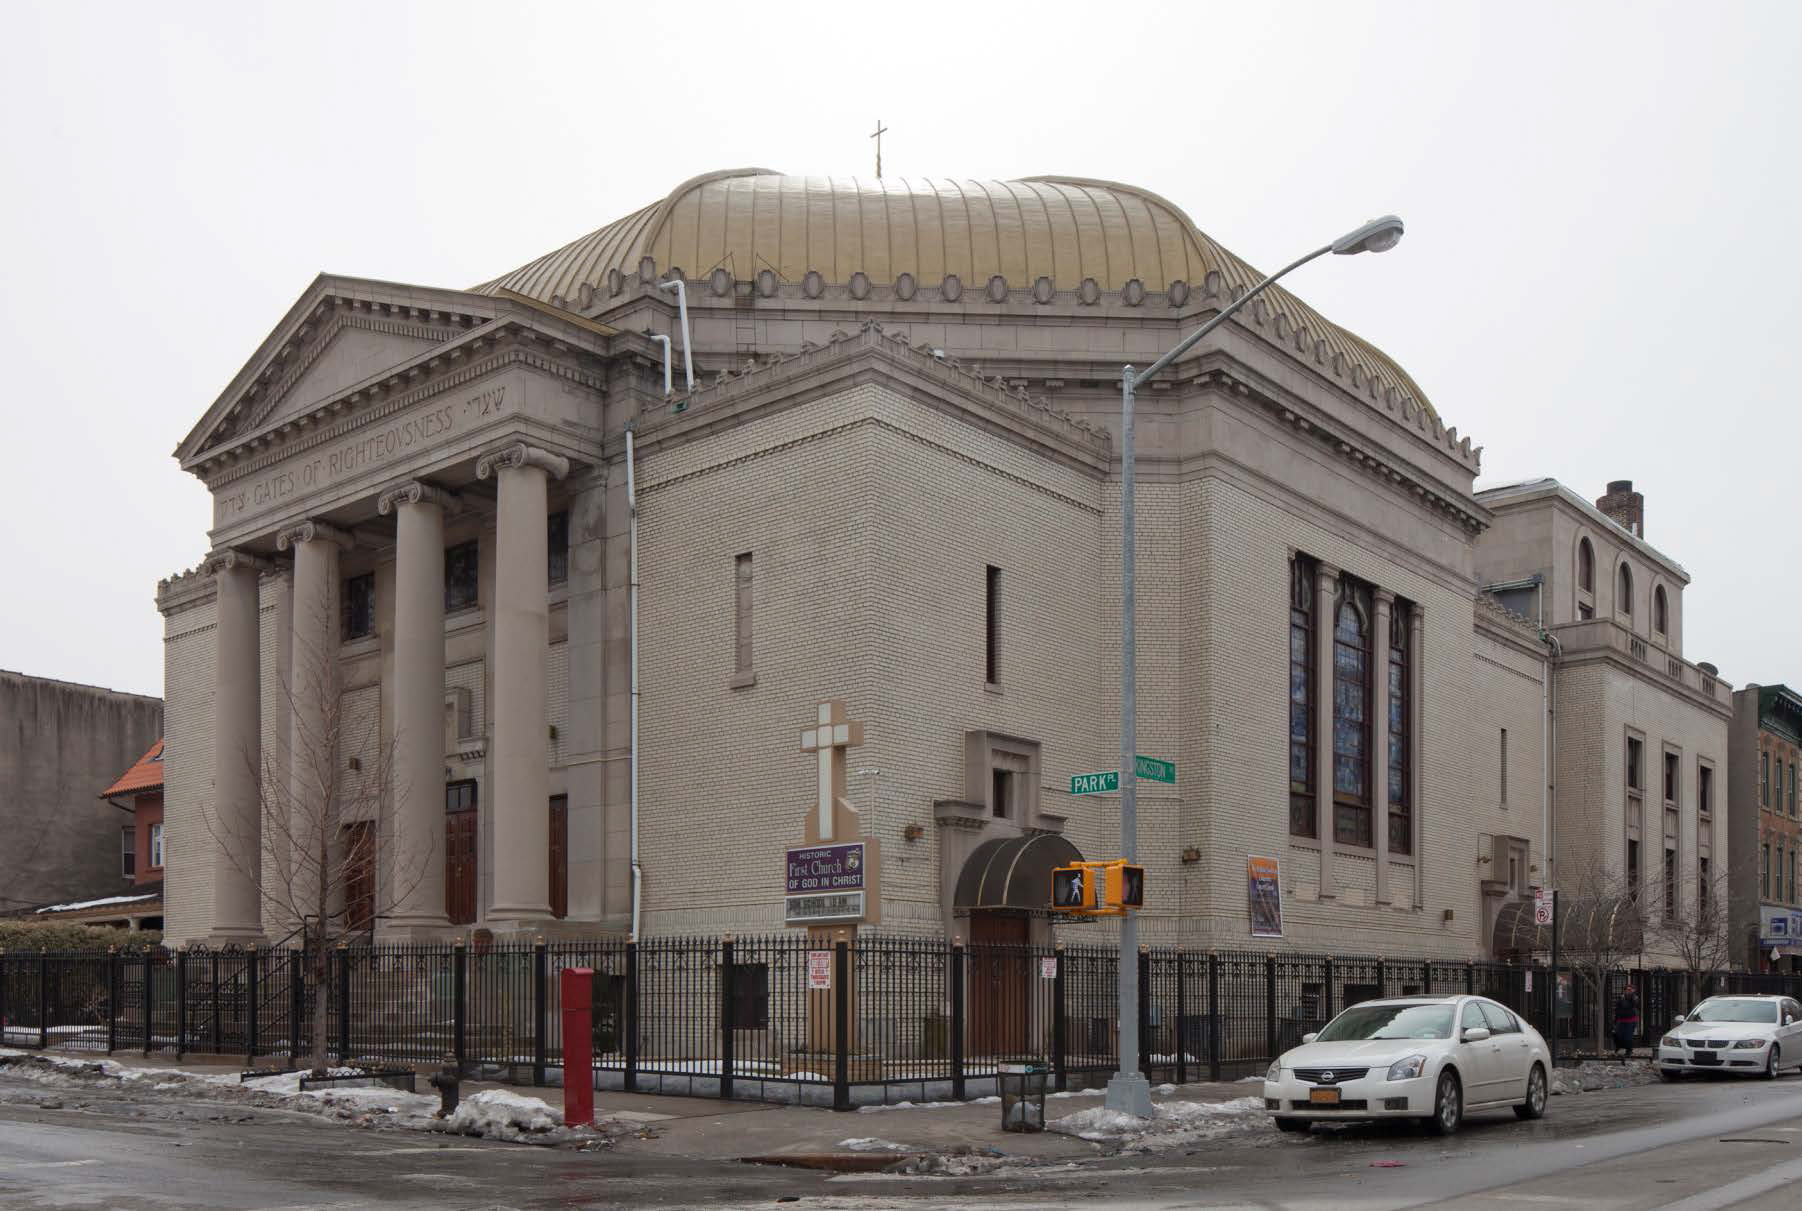 The former Shaari Zedek Synagogue on Kingston Avenue. LPC photo.